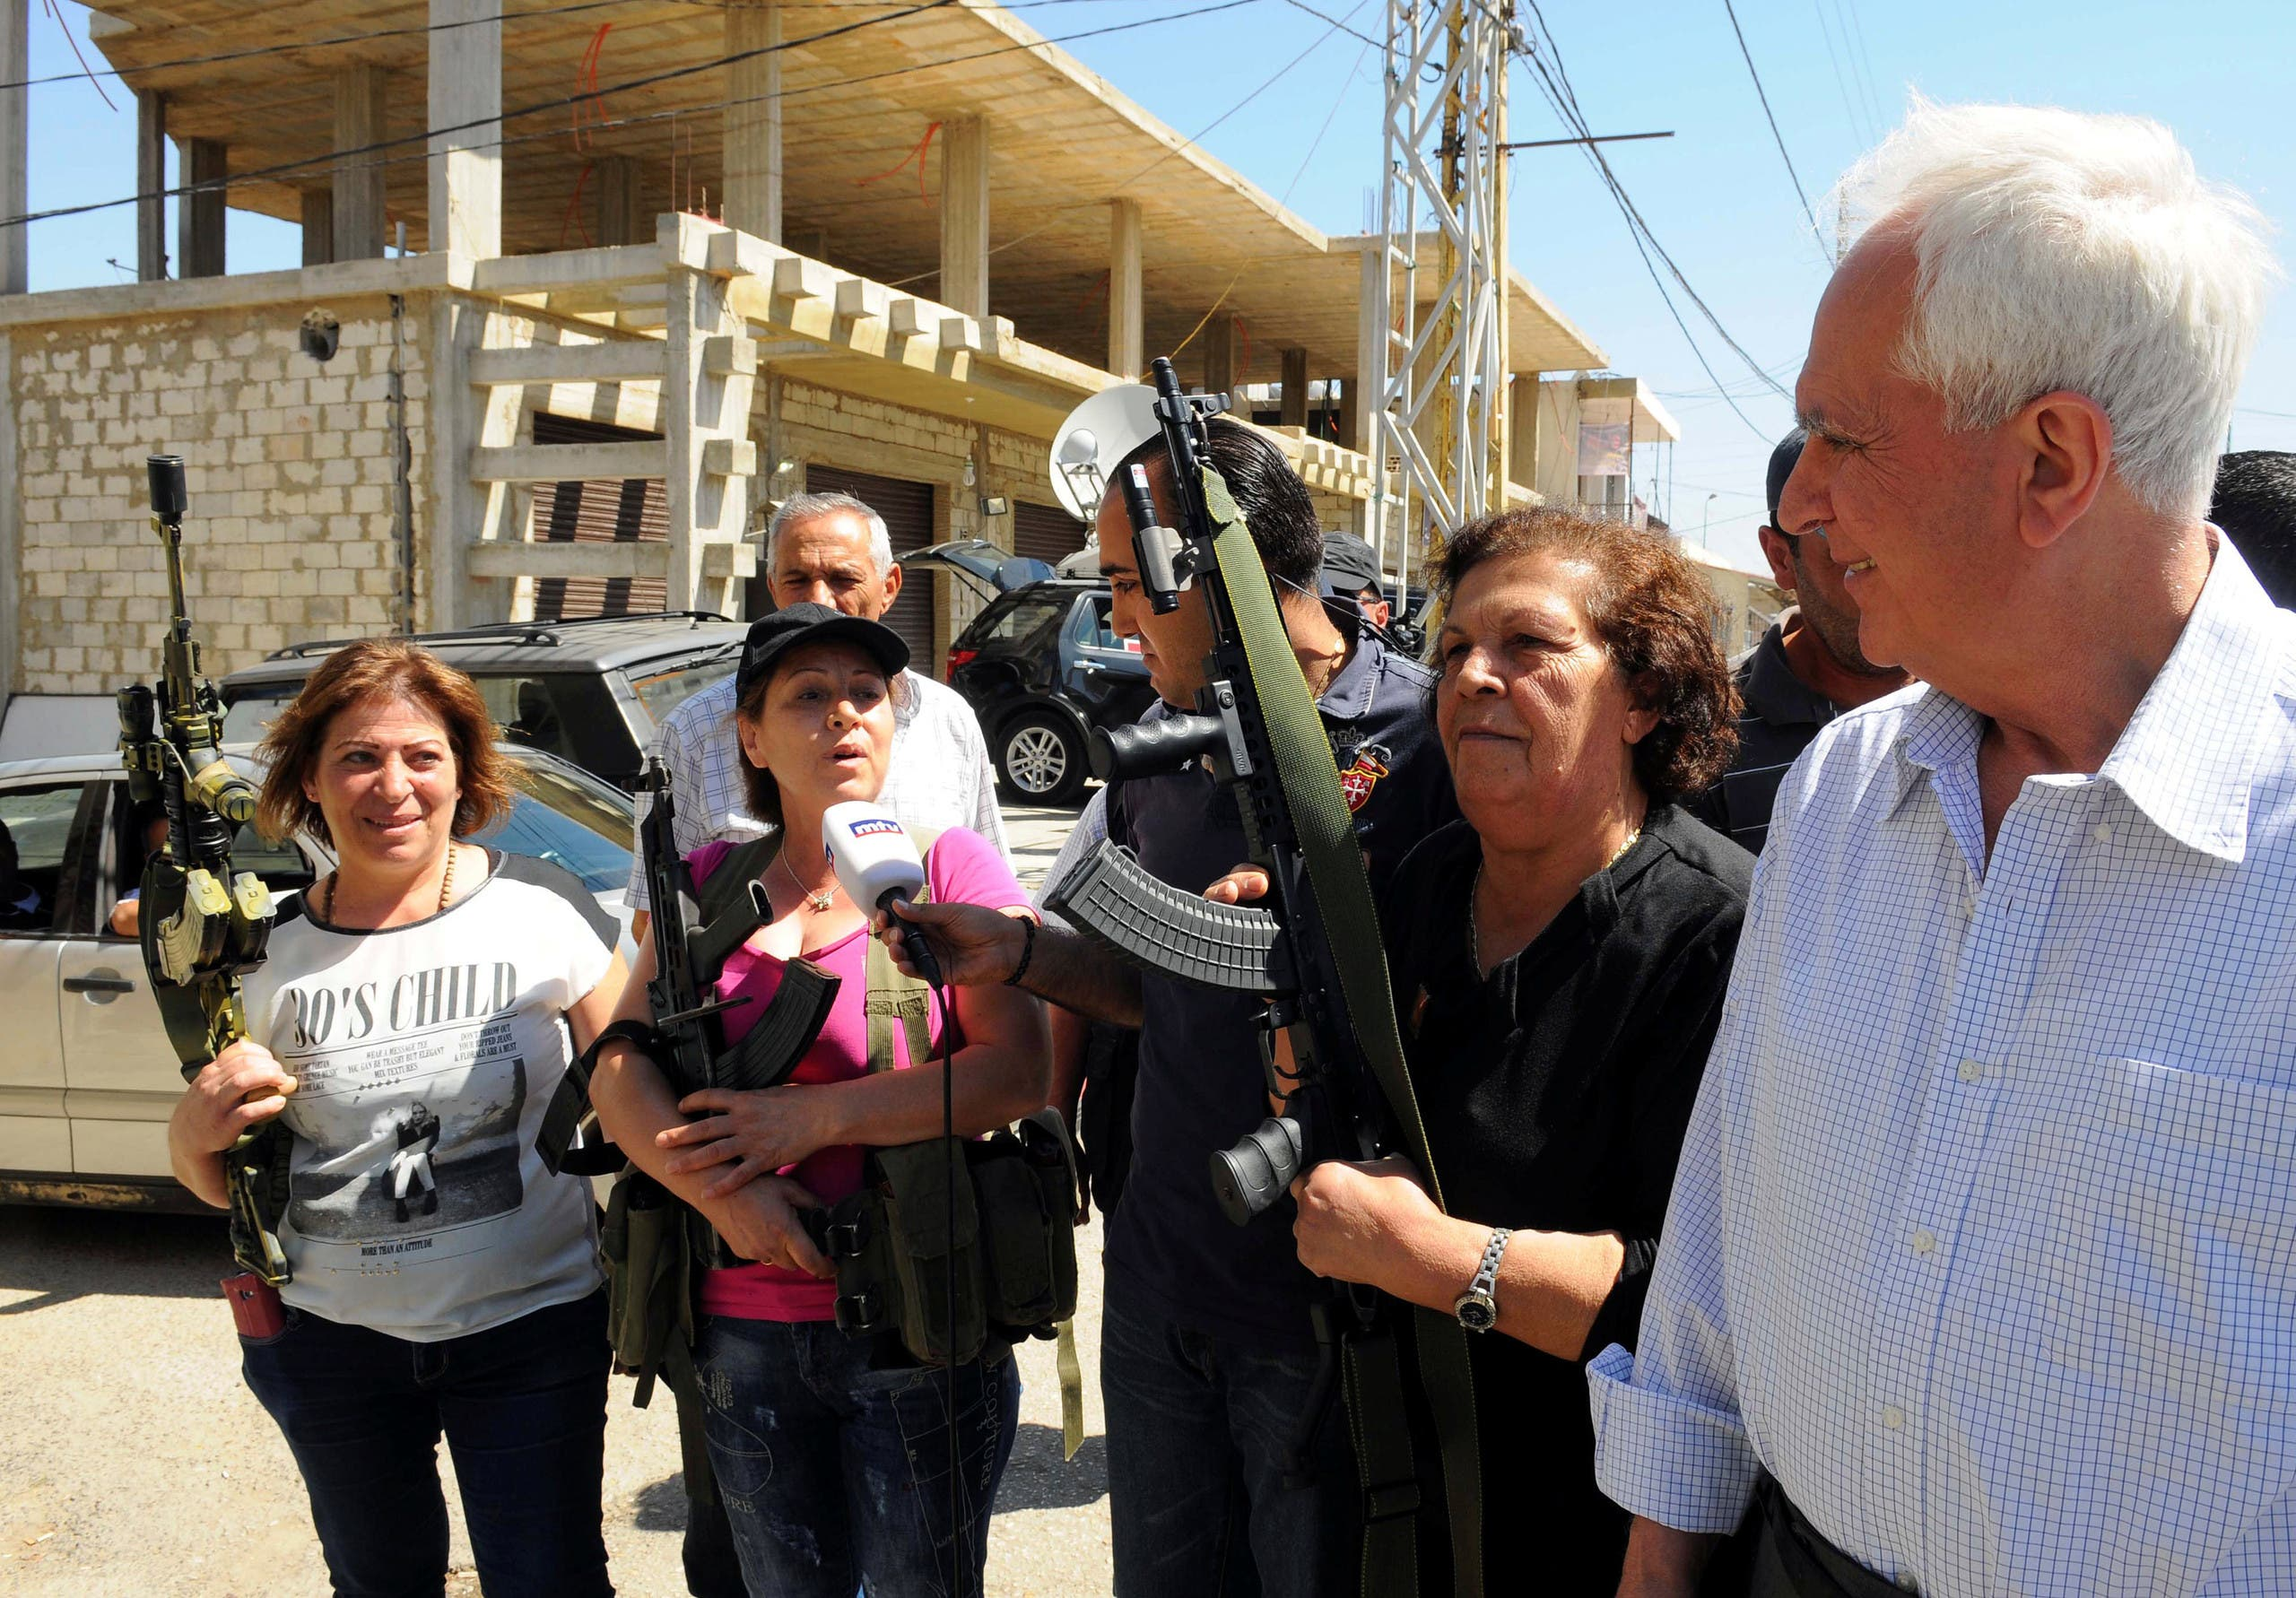 Member of the Syrian Social Nationalist Party and Lebanese MP Marwan Fares stands with women who are posing with guns and talking to journalists in the Christian village of Qaa, in the Bekaa valley, Lebanon June 28, 2016. (Reuters)